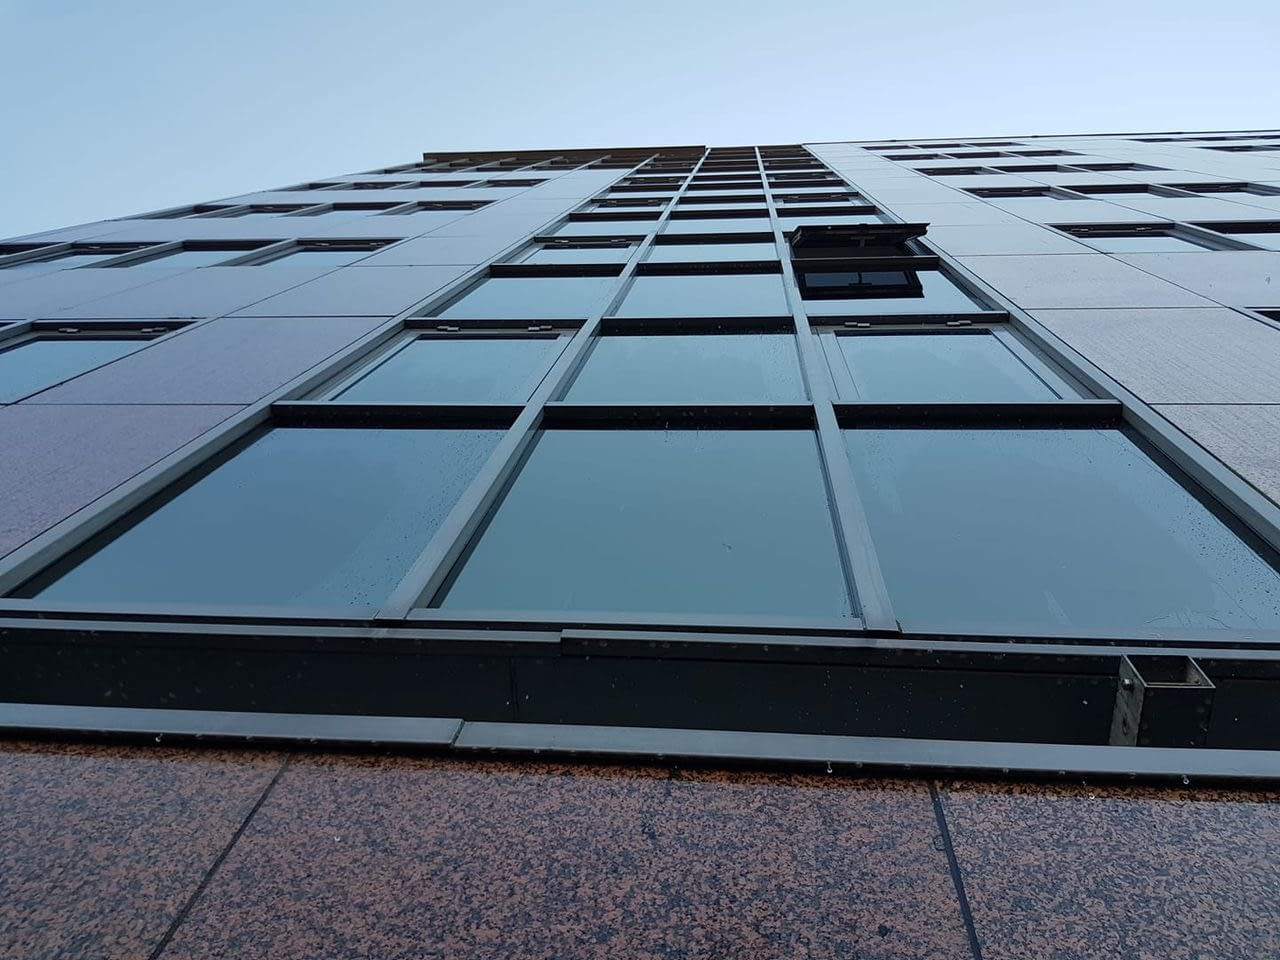 High Rise Window Cleaners that use scaffolding swing stage OSHA approved Denver CO